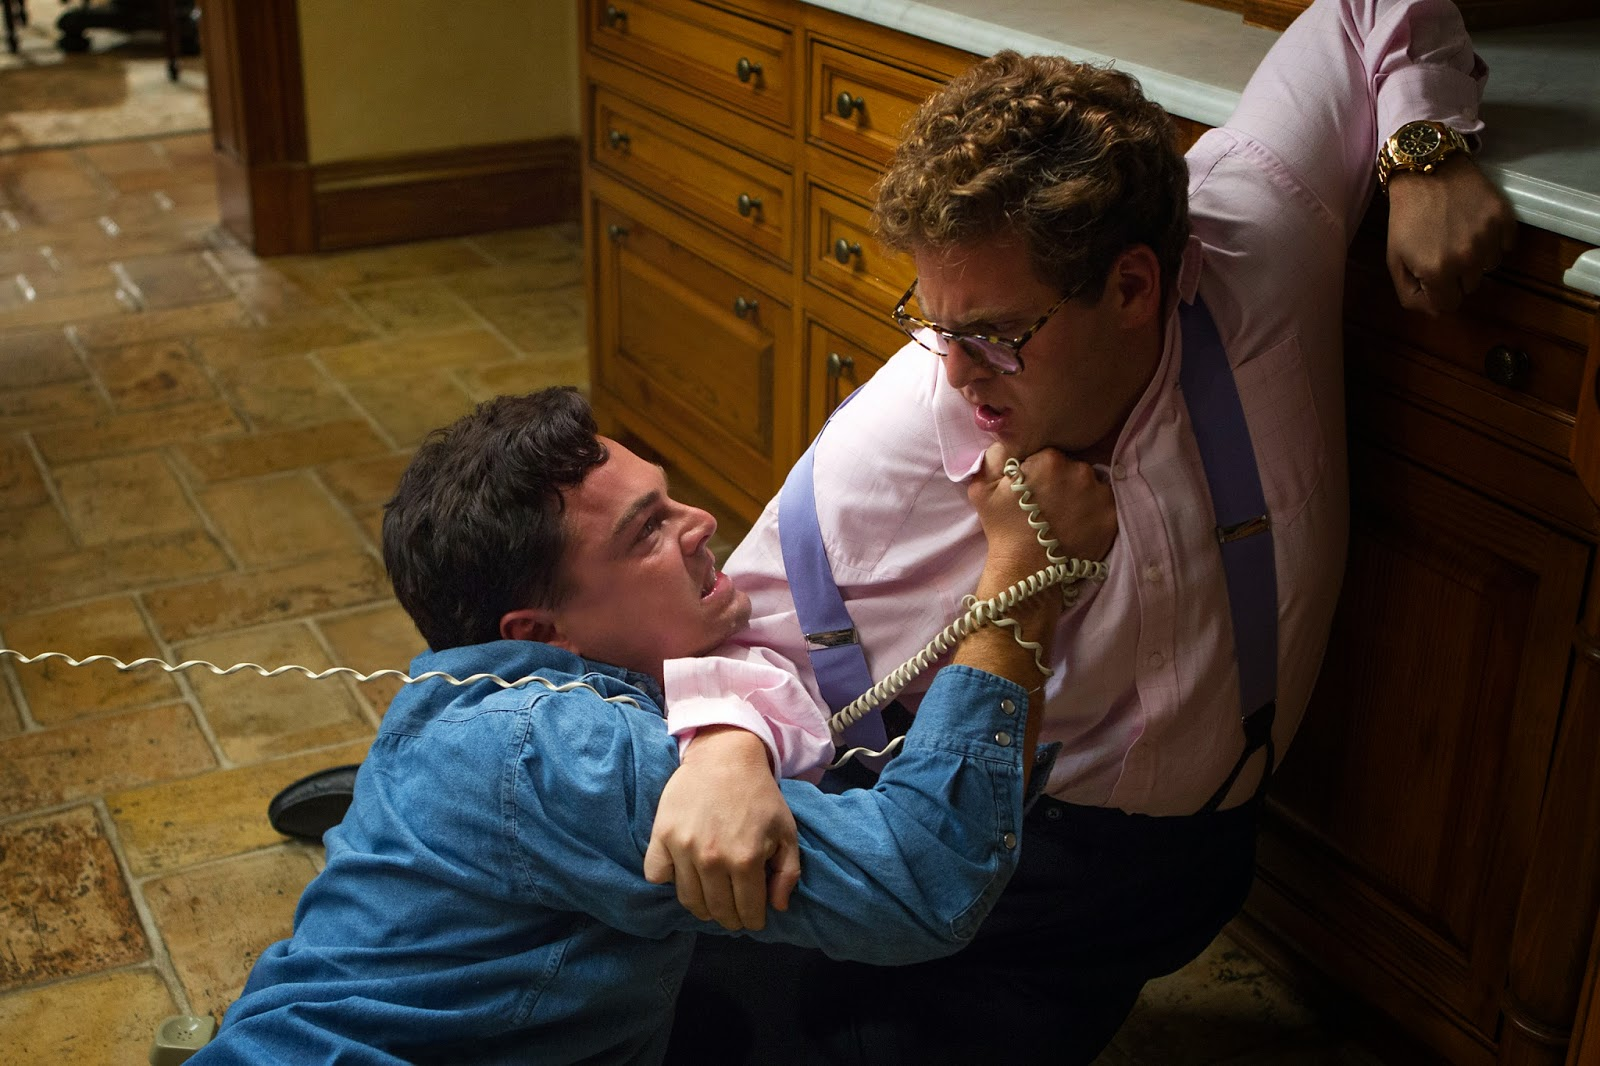 The wolf of wall street review reviews from a bed jordan belfort leonardo dicaprio is adamant about getting donnie azoff jonah hill off the phone amipublicfo Image collections